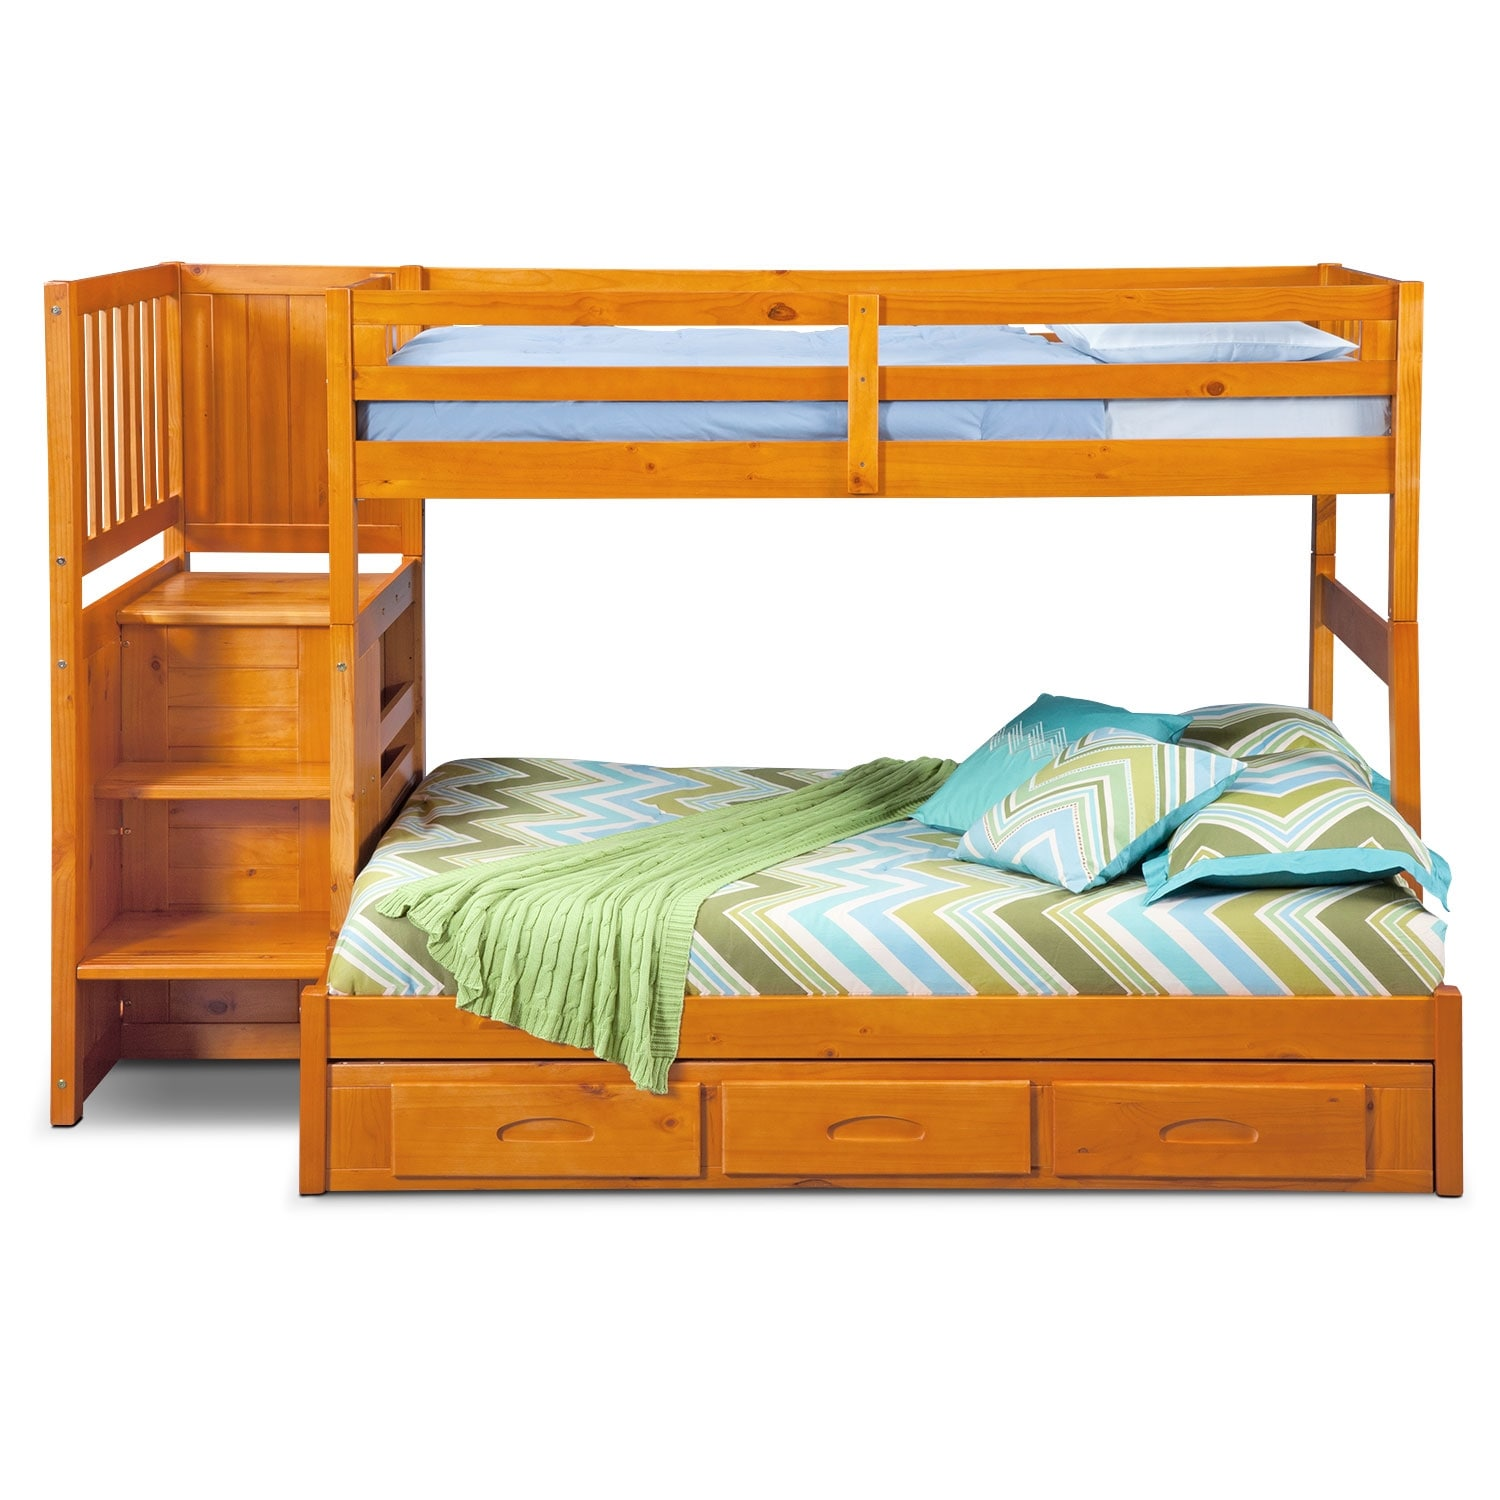 Bed Over Stair Box With Storage And Stairs: Ranger Twin Over Full Bunk Bed With Storage Stairs